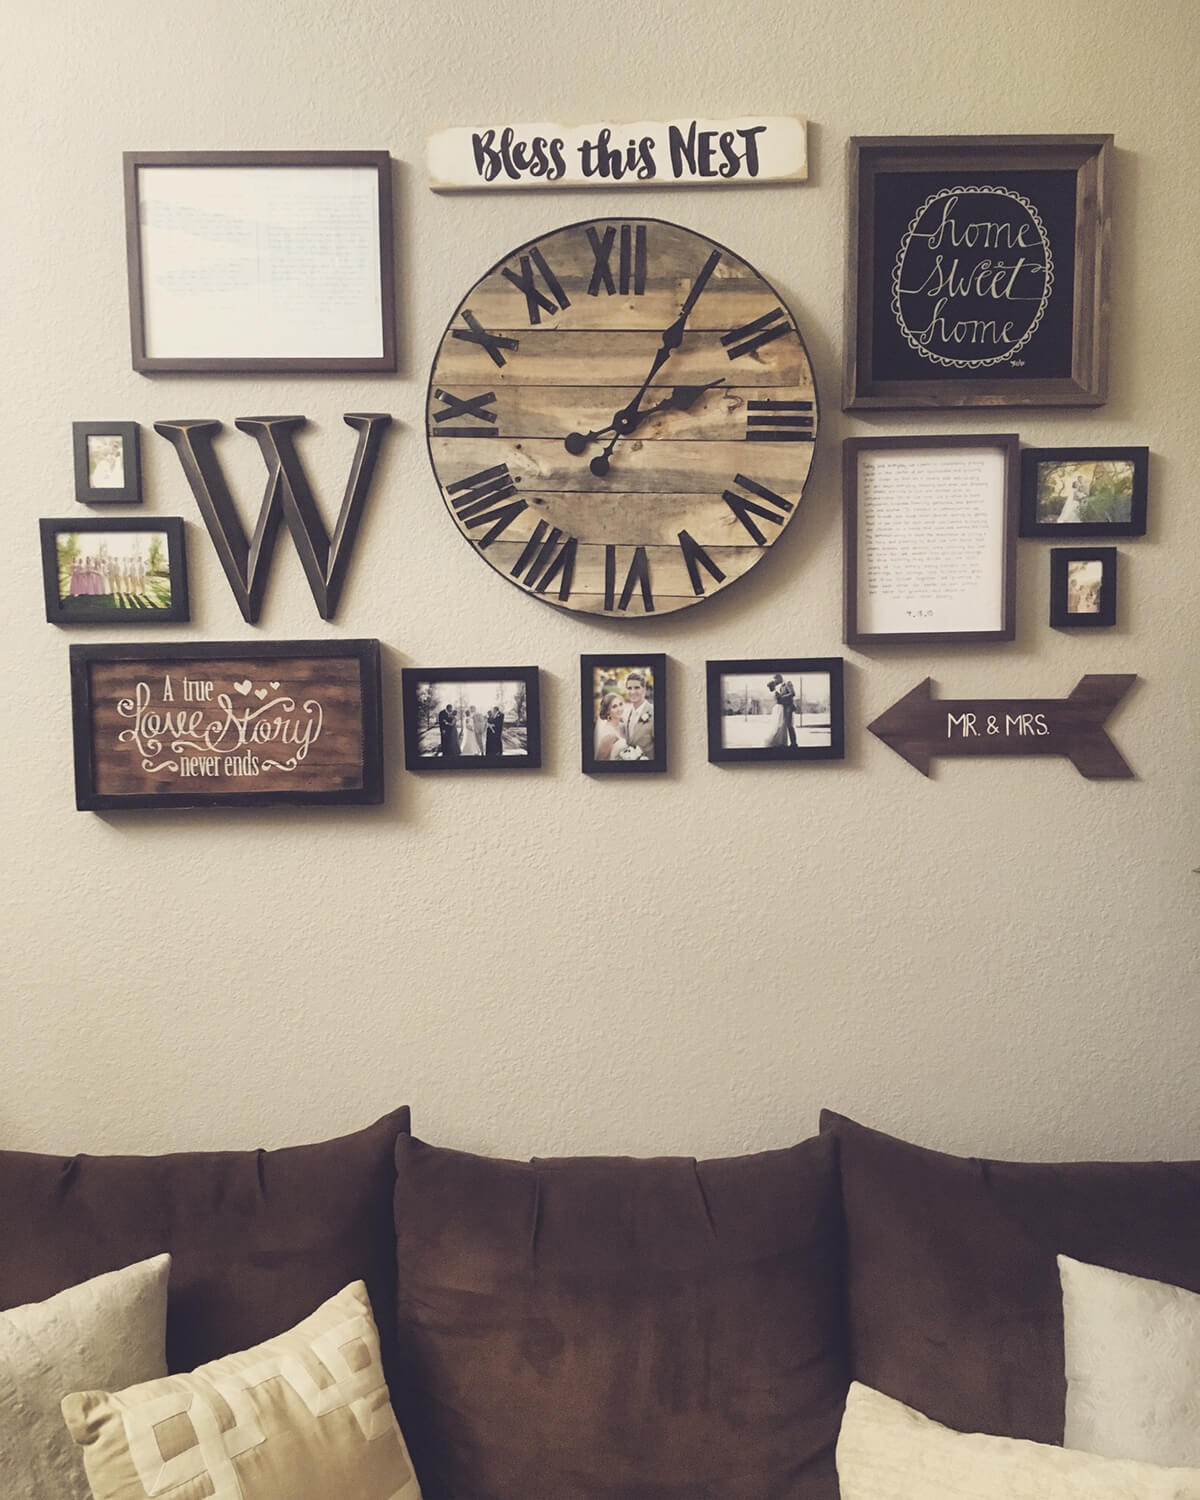 30 Wall Decor Ideas For Your Home: 33 Best Rustic Living Room Wall Decor Ideas And Designs